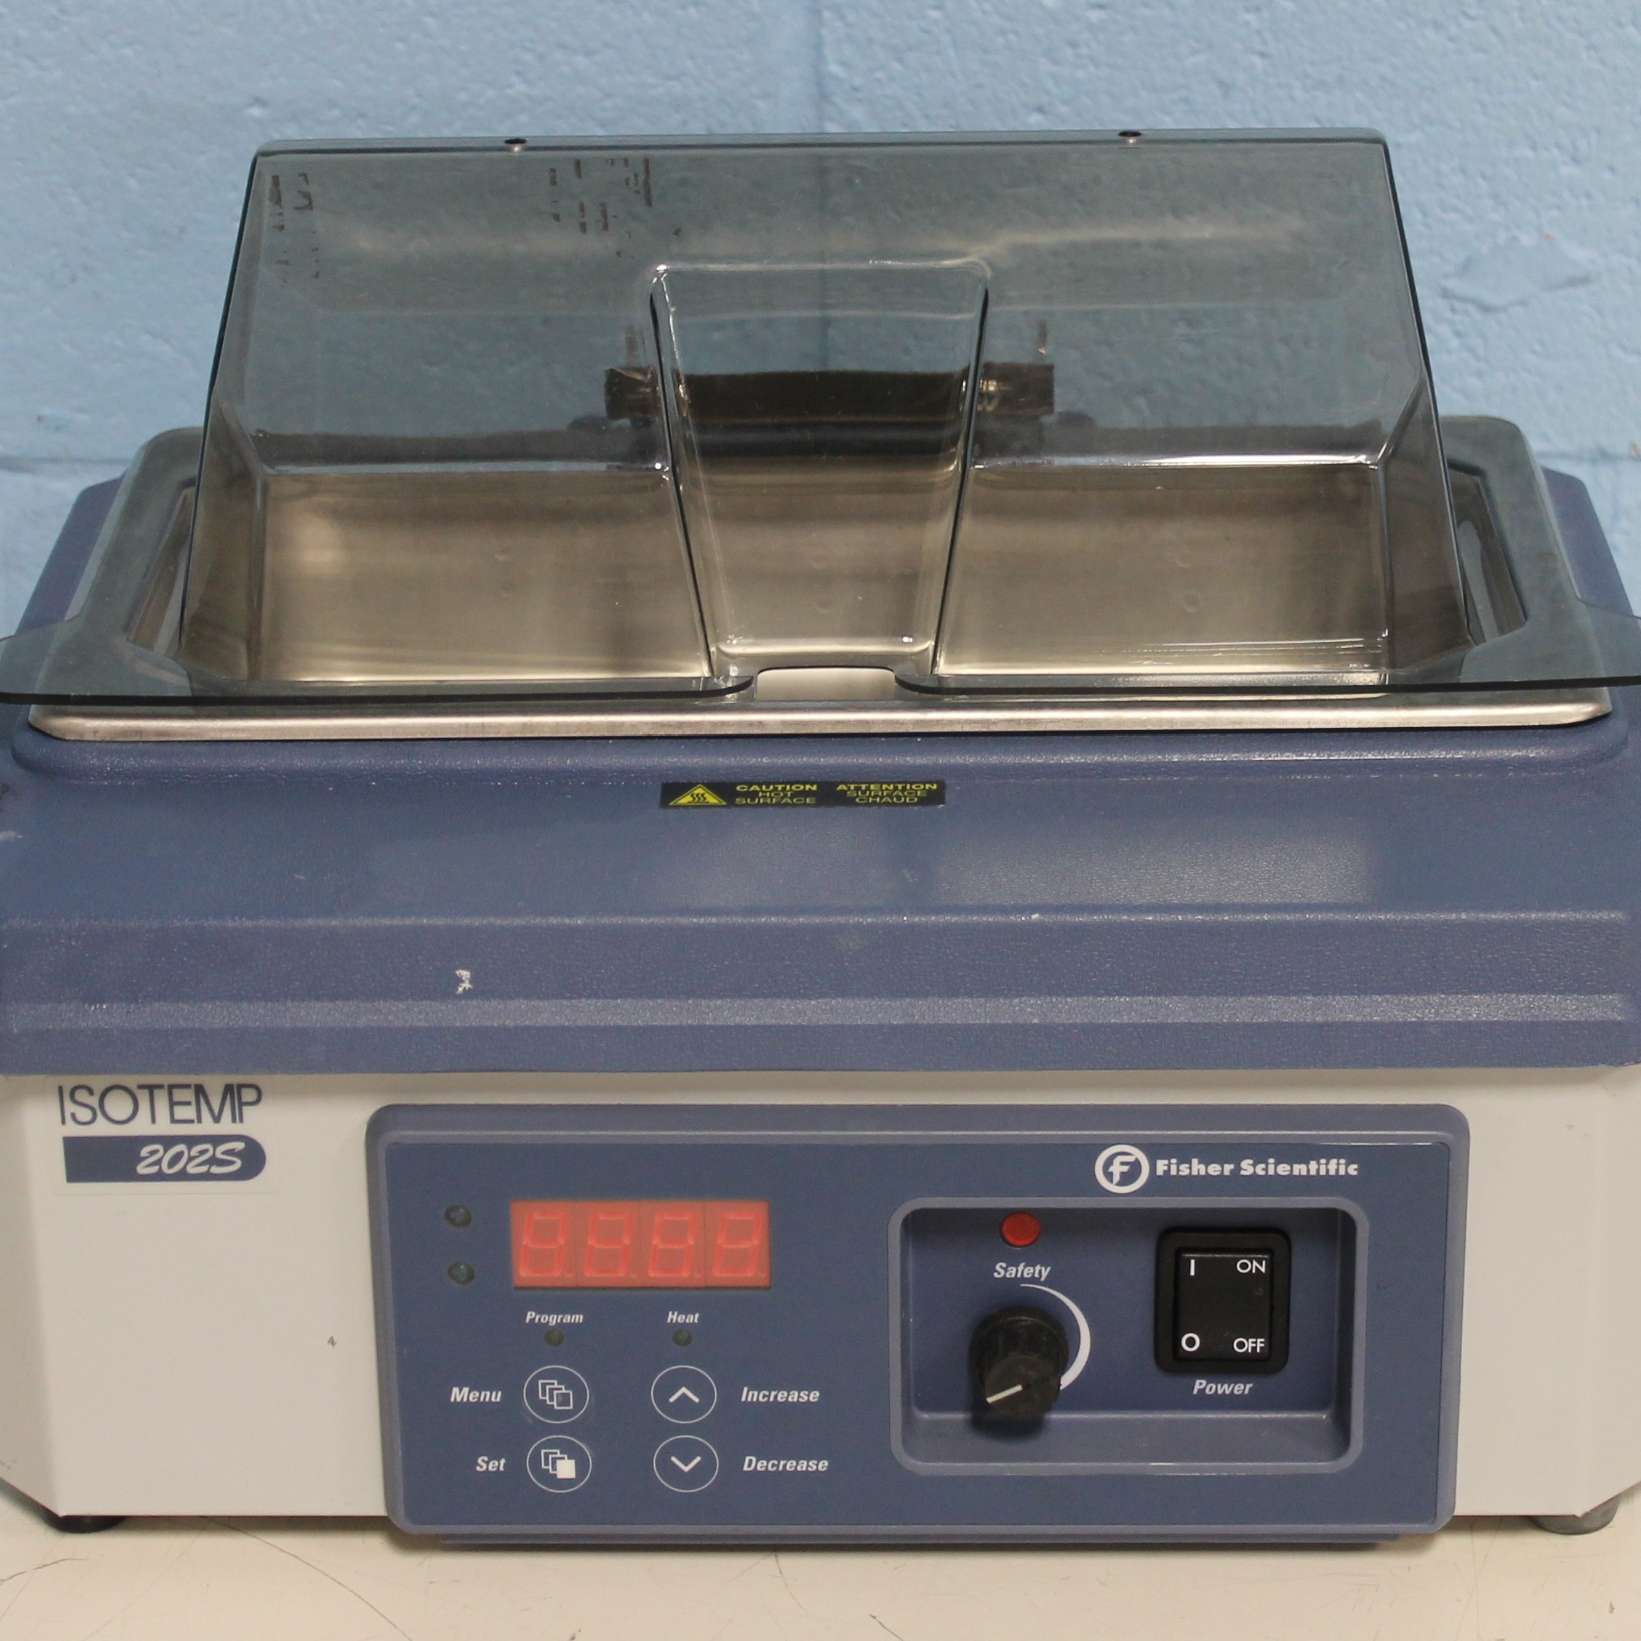 Fisher Scientific 202S Isotemp Digital Water Bath CAT No. 15-462-2S Image